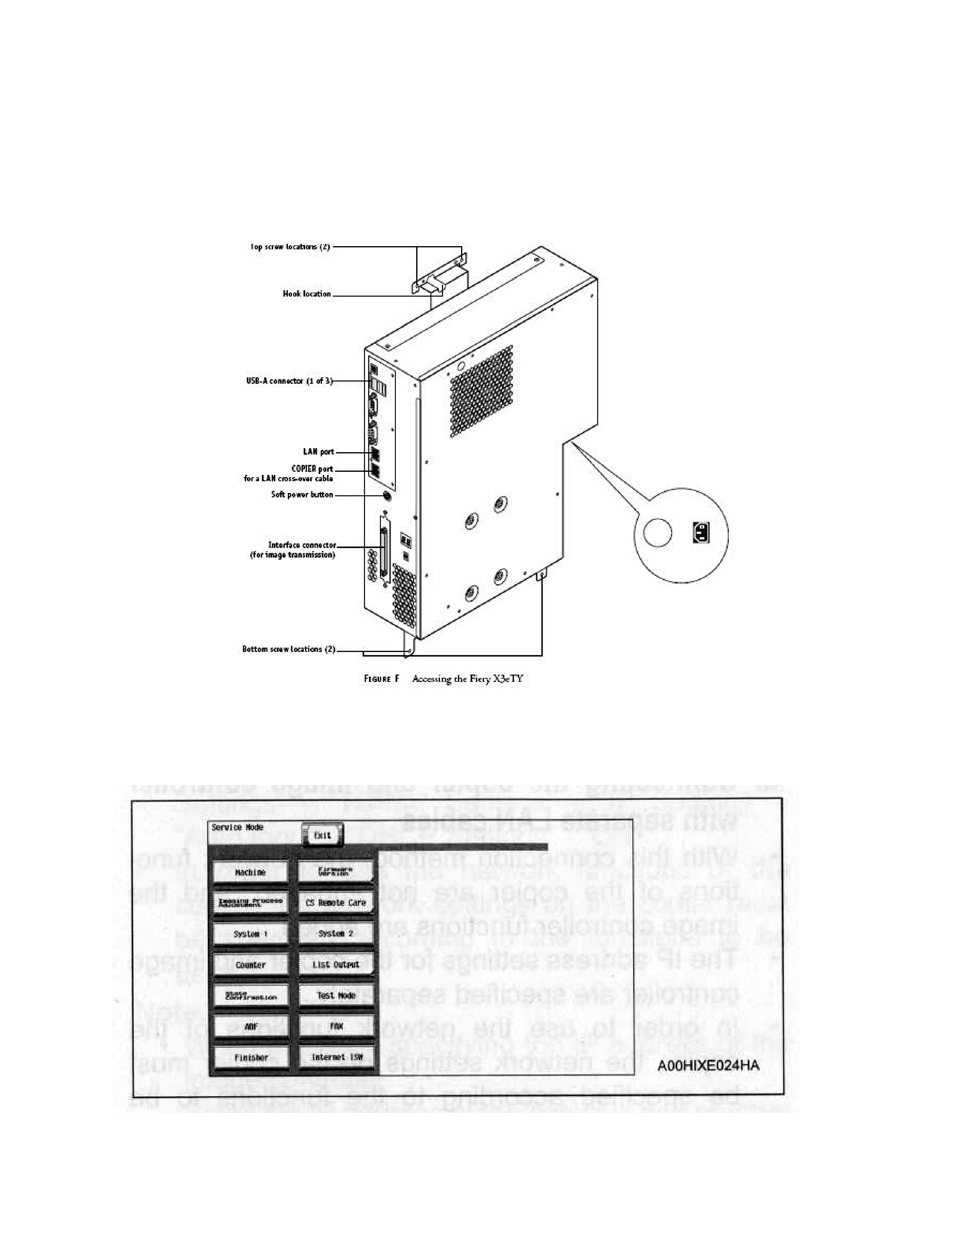 Konica Minolta bizhub C451 User Manual | Page 2 / 7 | Also for: bizhub C650,  IC-409, bizhub C550